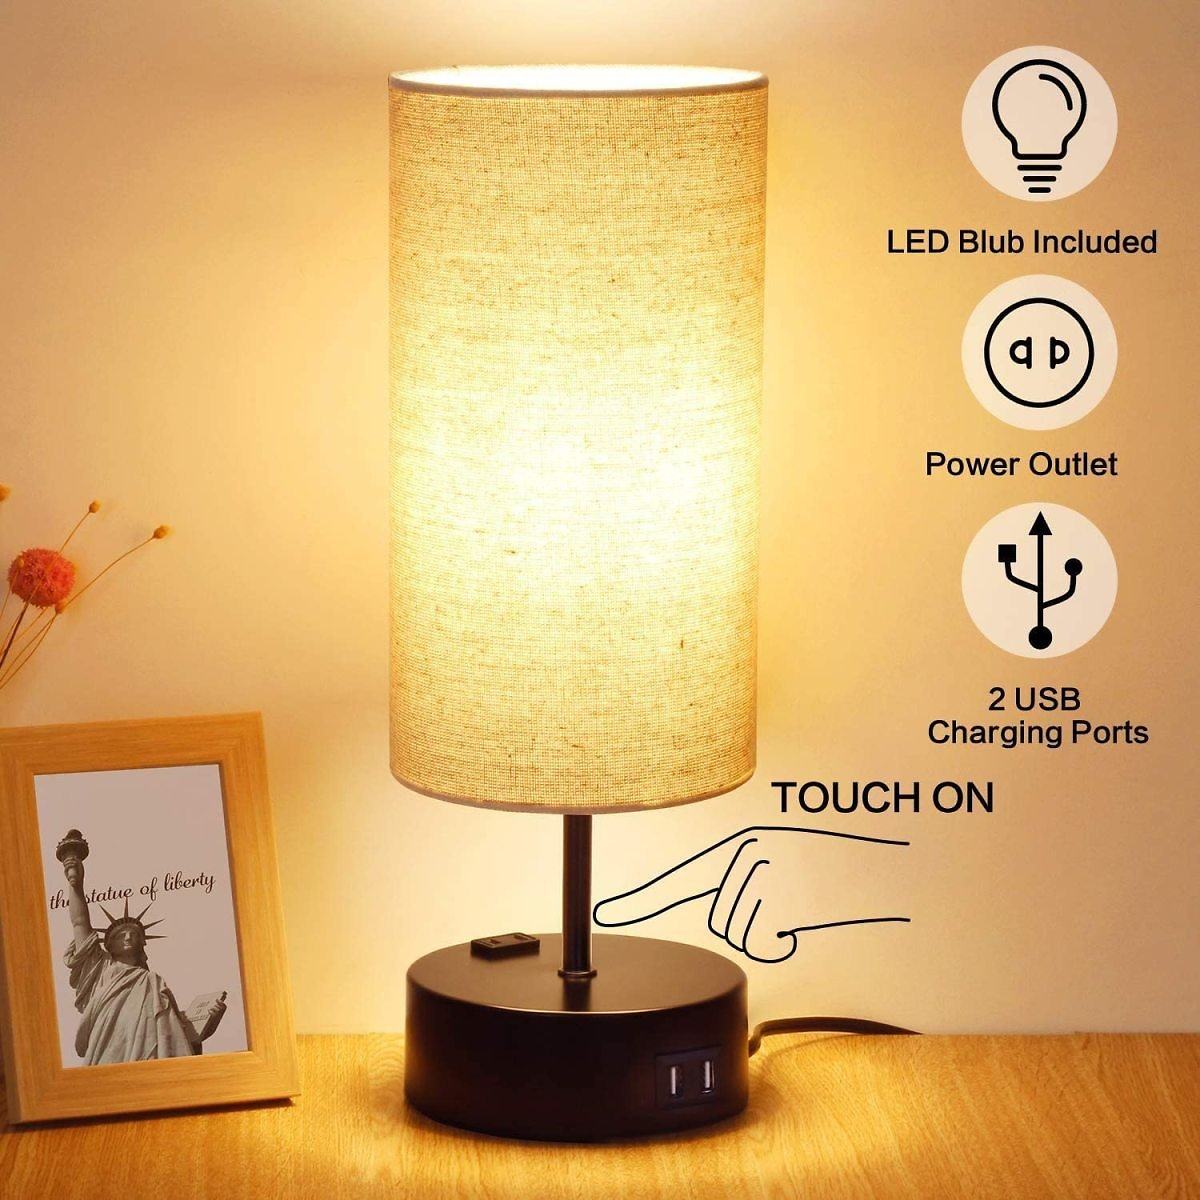 3 Way Dimmable Touch Table Lamp, 2 Fast Charging USB Ports with Power Outlet. Bedside Touch Lamp, Nightstand Lamp, Bedroom Lamp